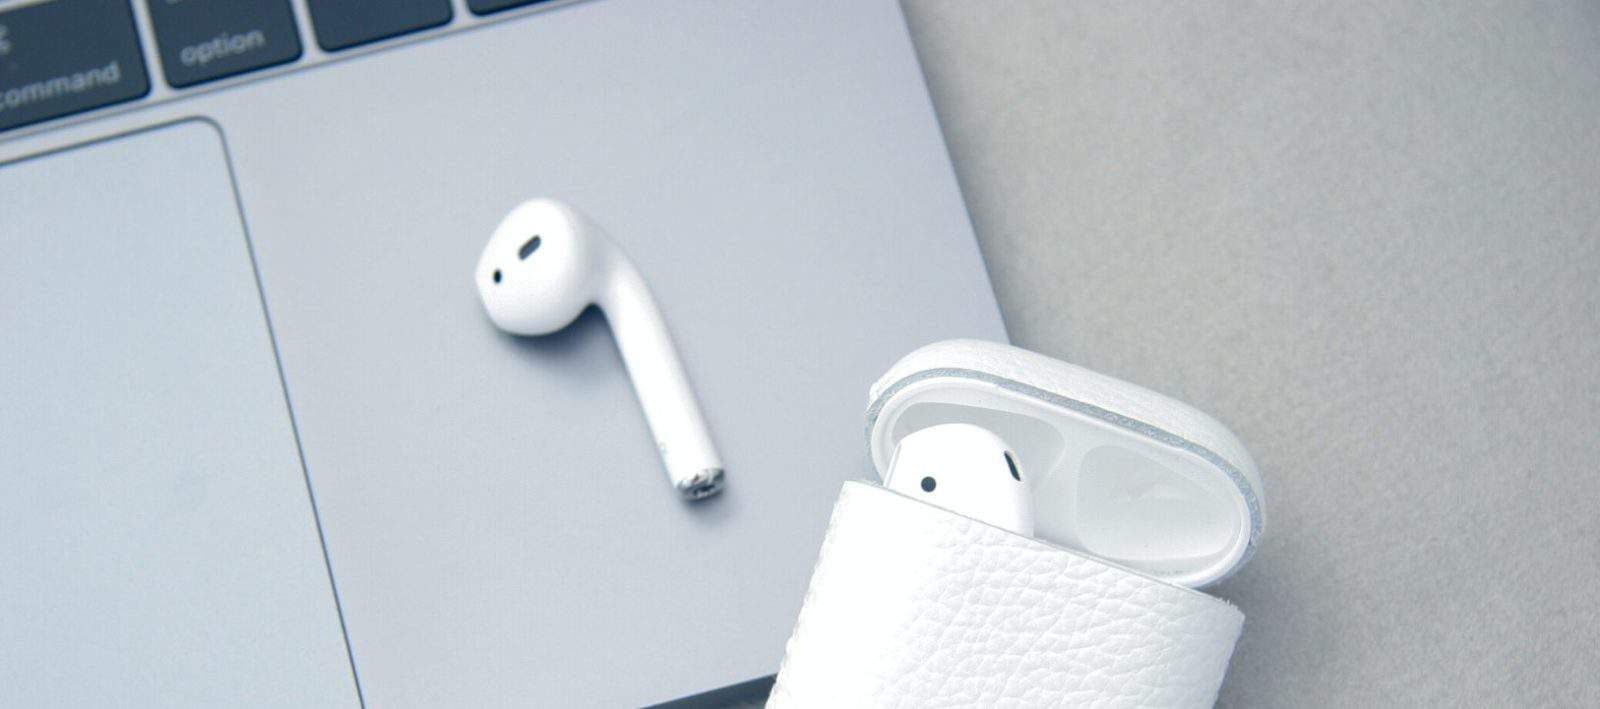 apple airpods on a table with macbook